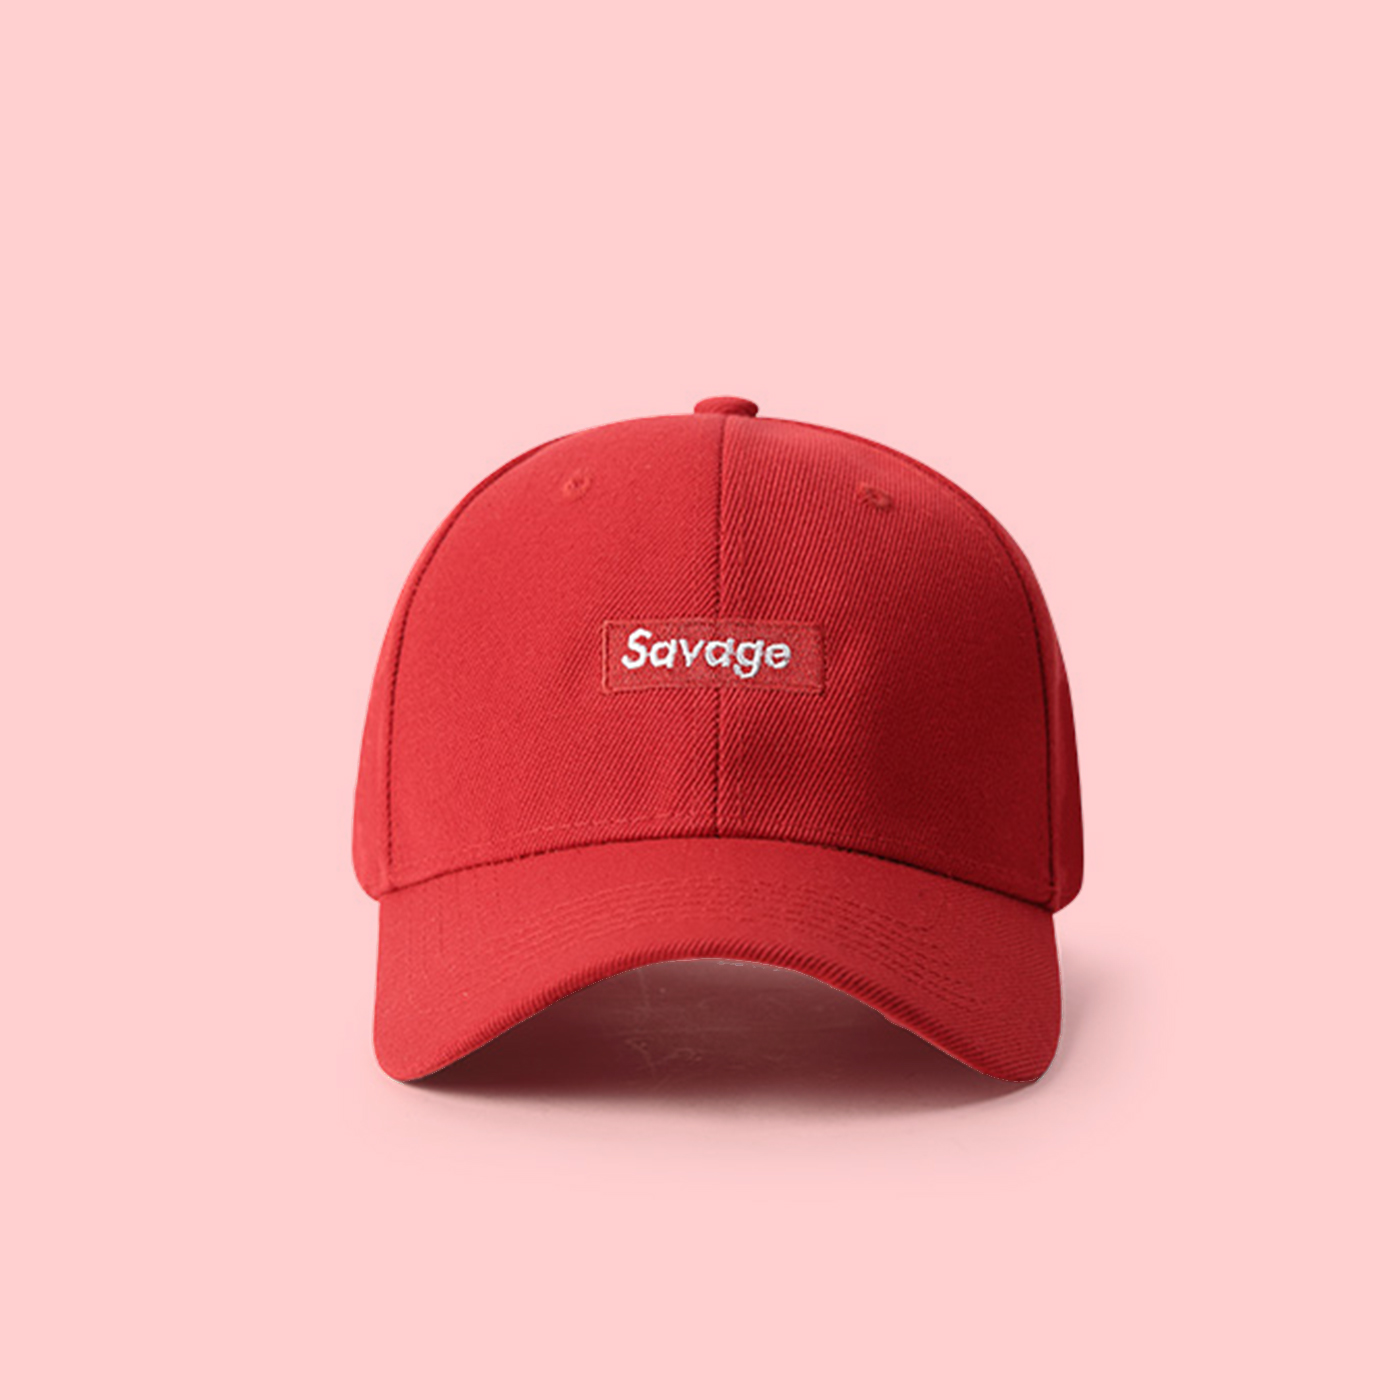 8322dc8b1680d6 UNISEX SUPREME SPOOF SAVAGE BASEBALL CAP IN RED · soldrelax · Online ...